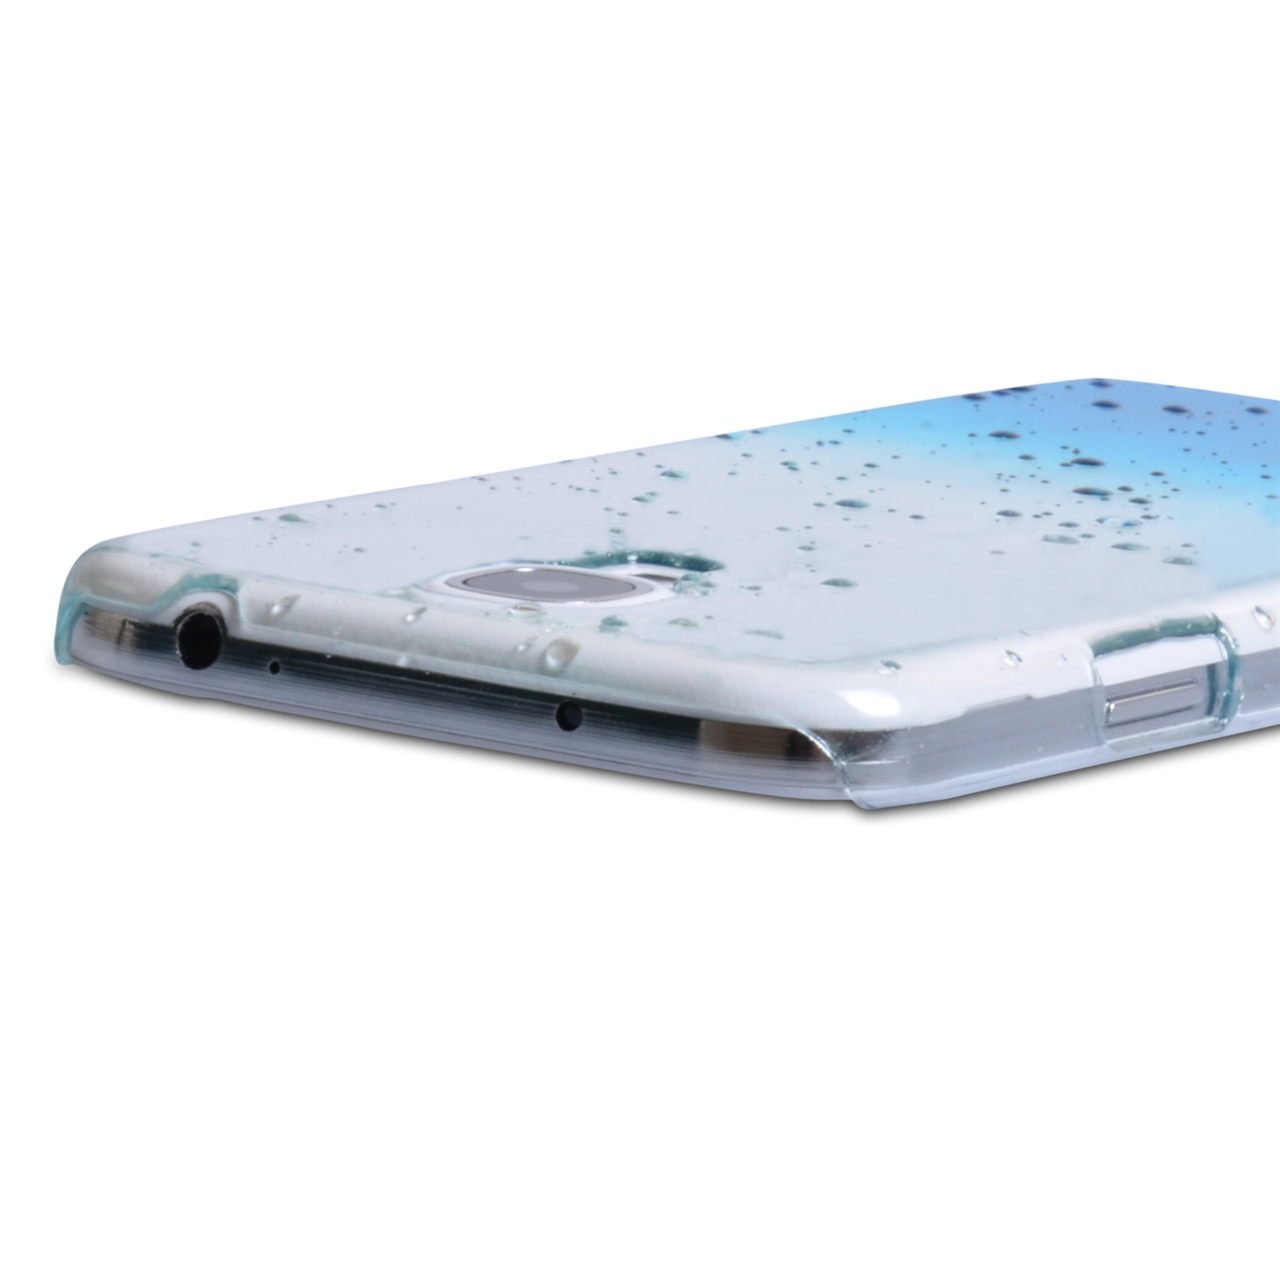 YouSave Accessories Samsung Galaxy S4 Raindrop Hard Case Blue/Clear